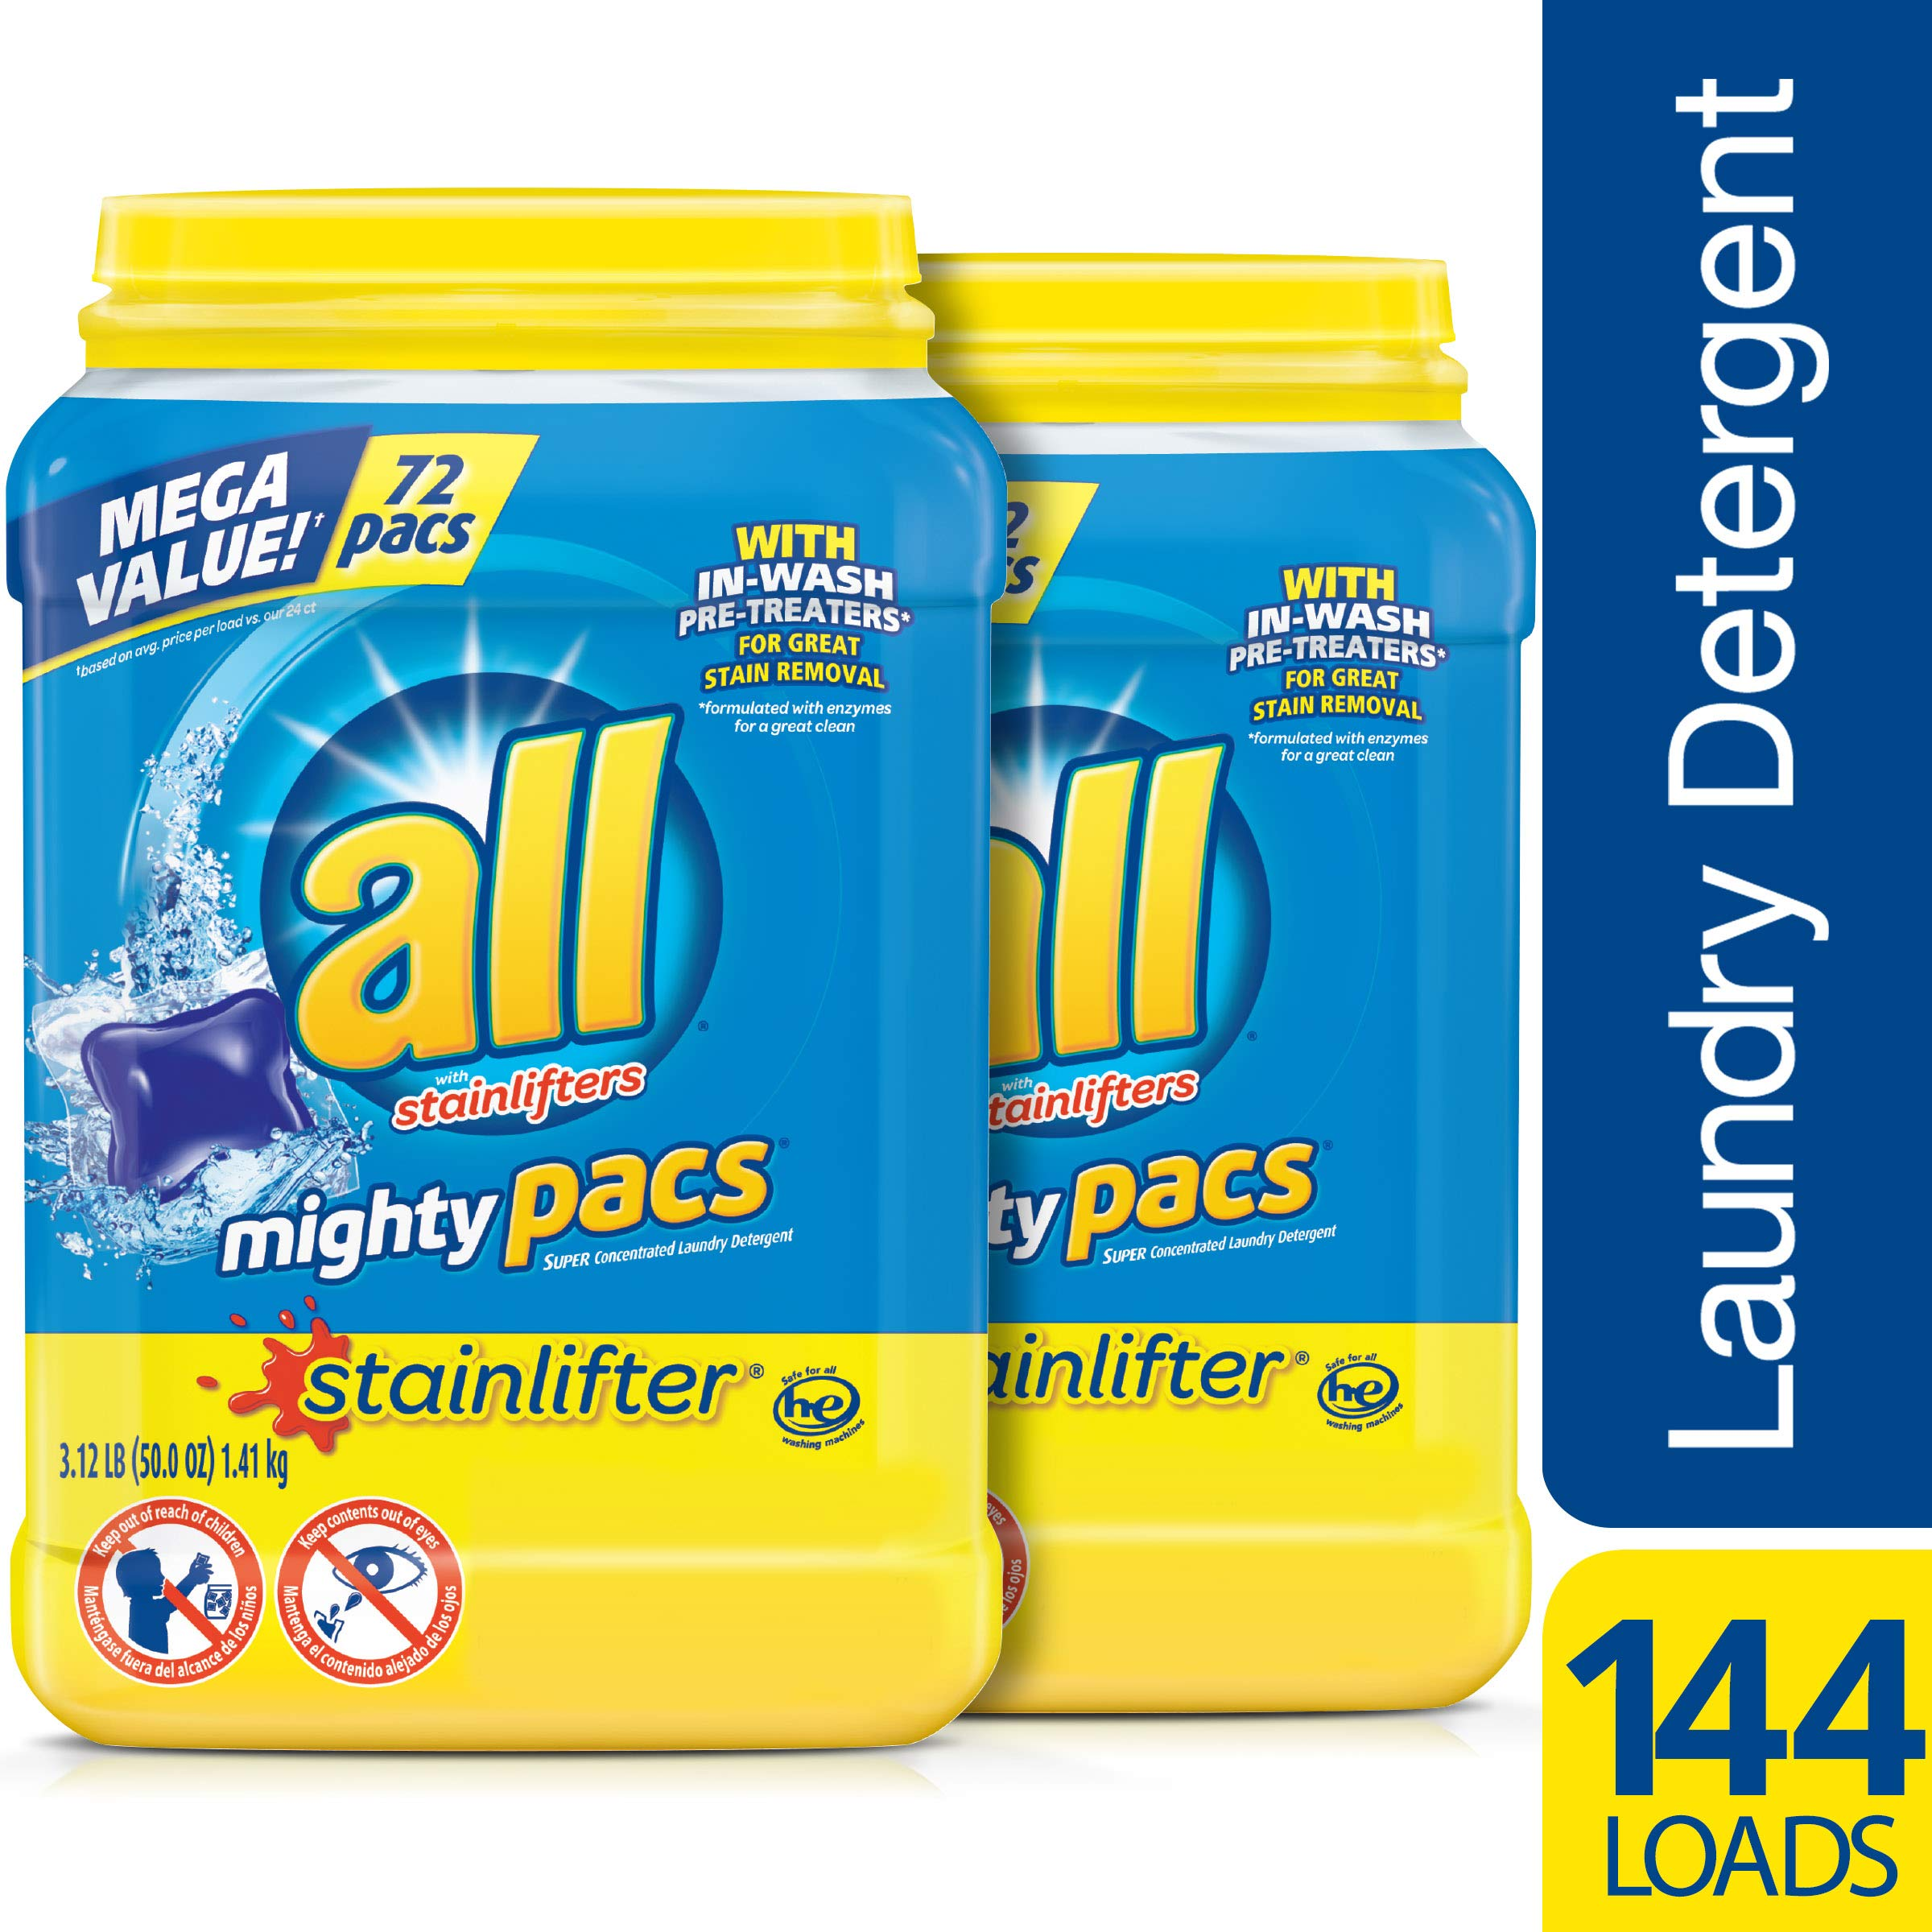 all Mighty Pacs Laundry Detergent, Stainlifter, 72 Count, 2 Tubs, 144 Total Loads by All (Image #3)